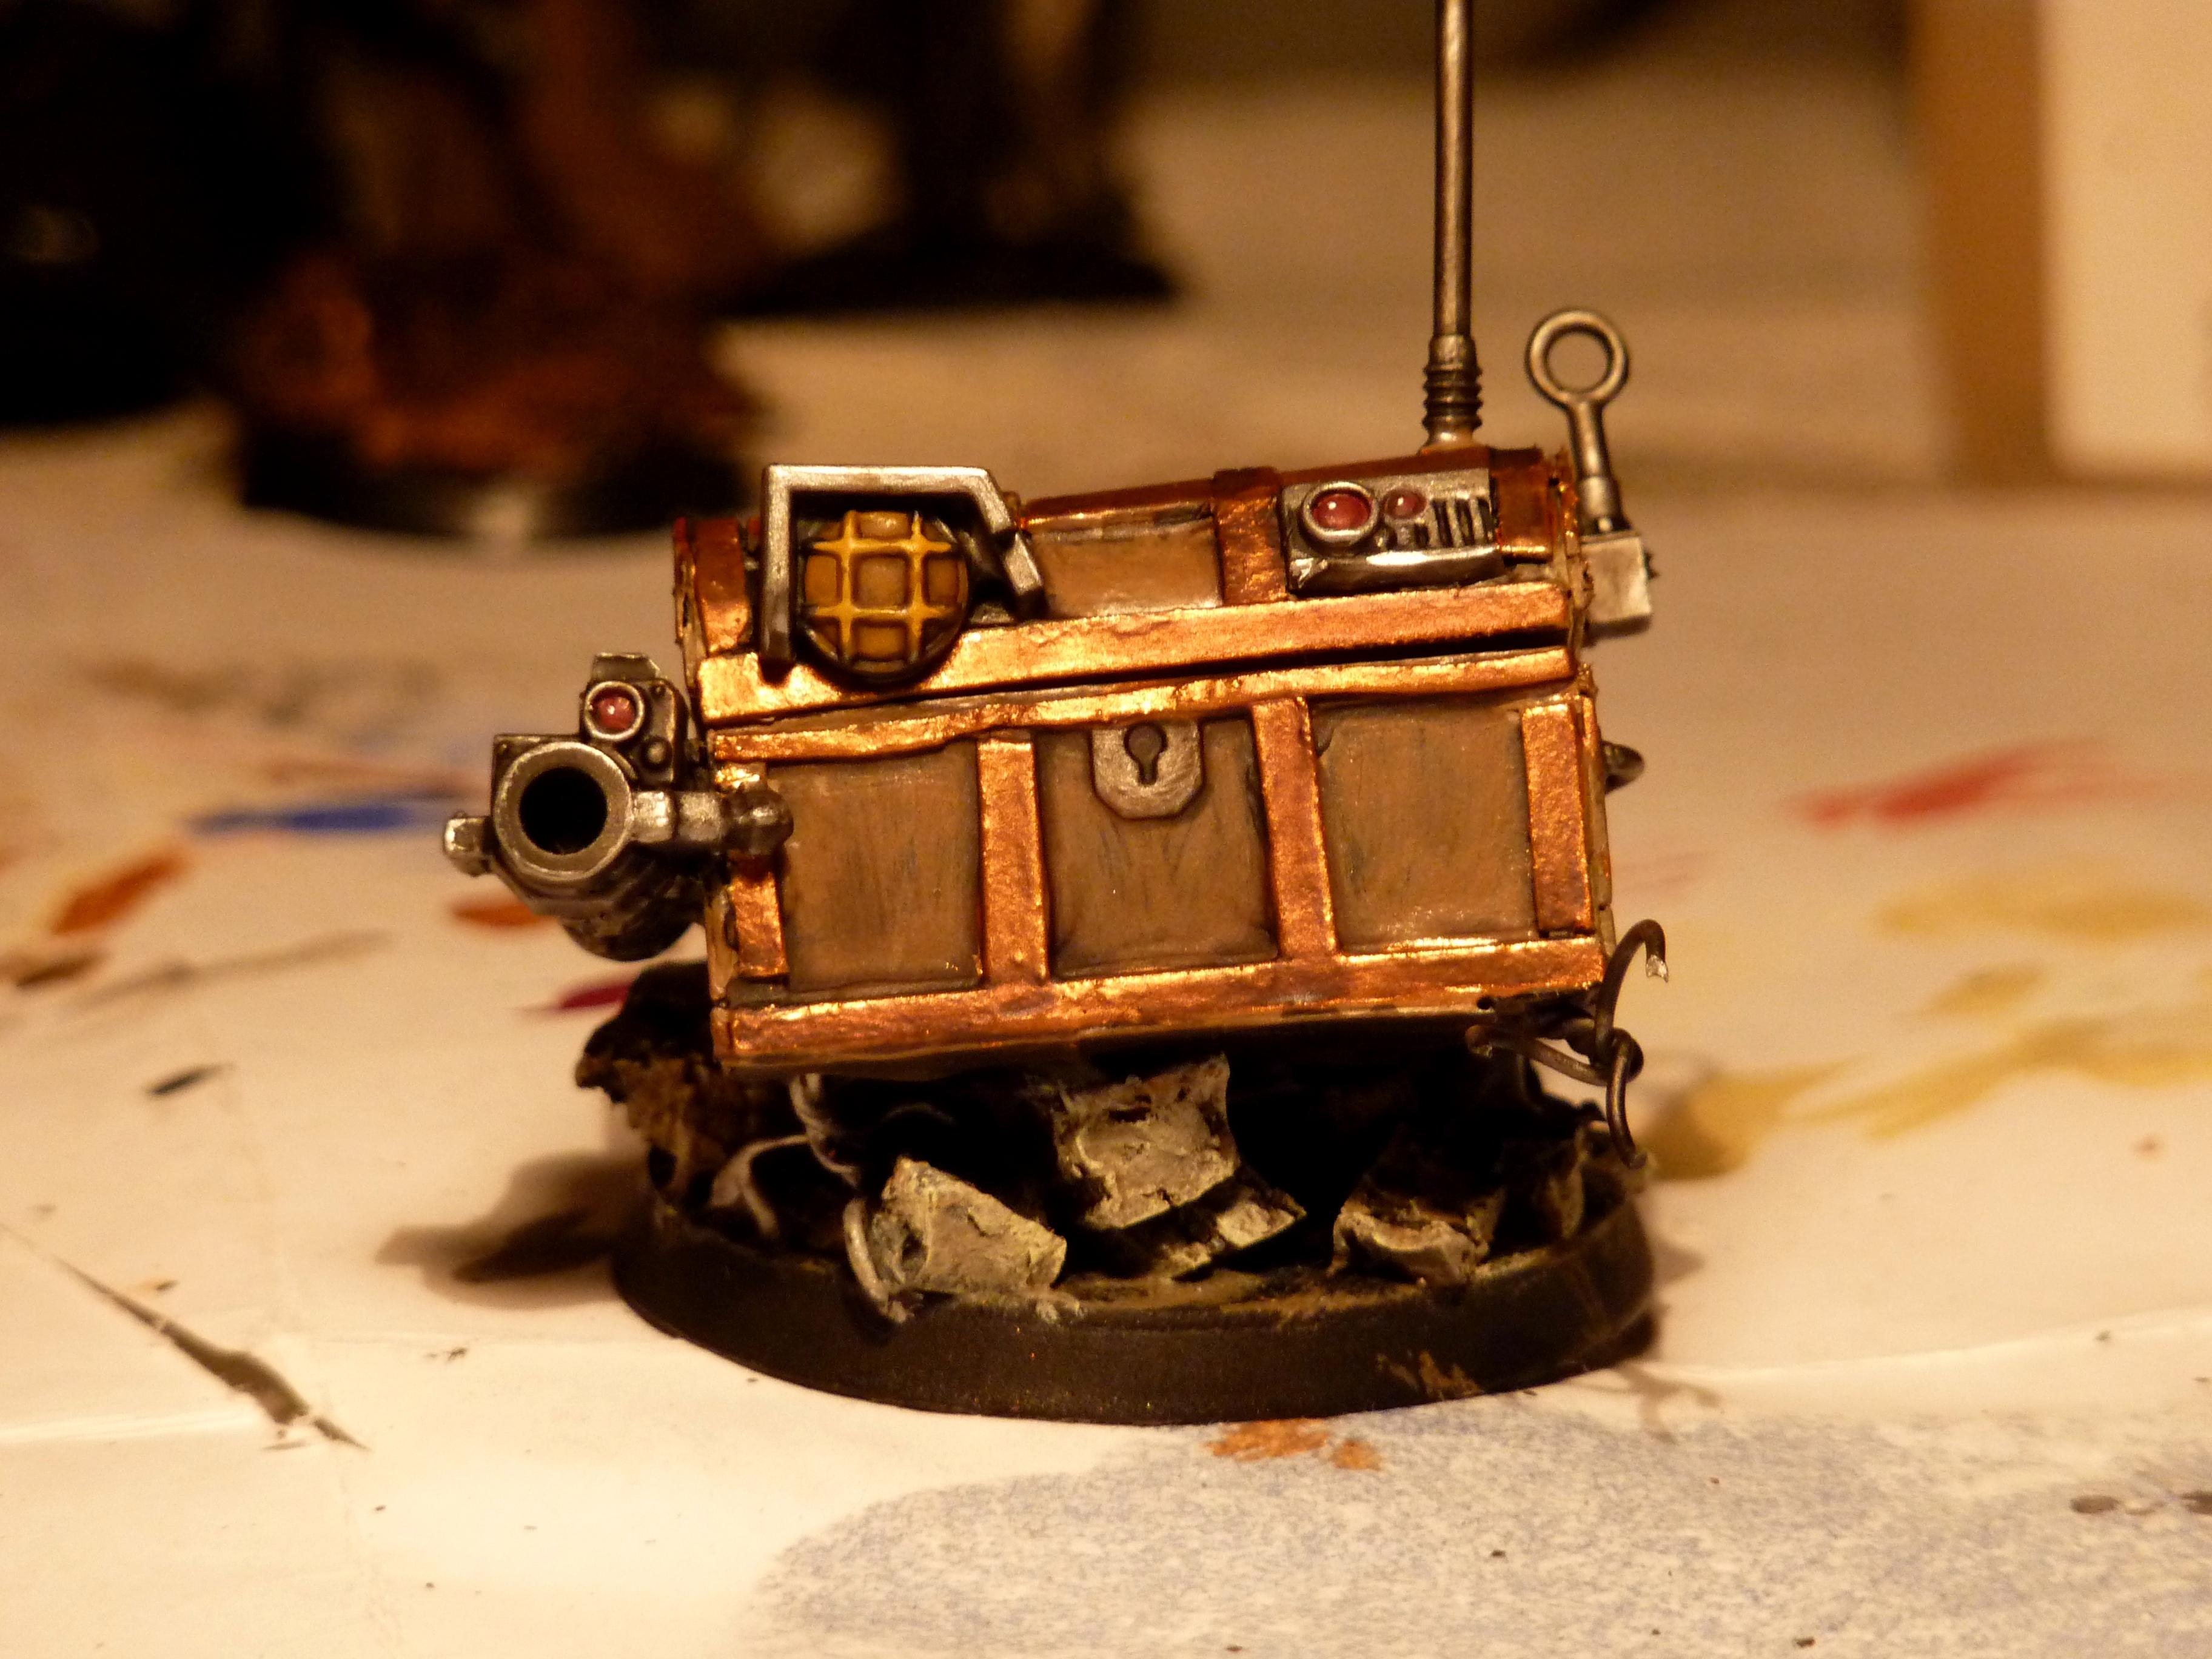 Discworld, Give Away, Luggage, Robot, Scratch Build, Warhammer 40,000